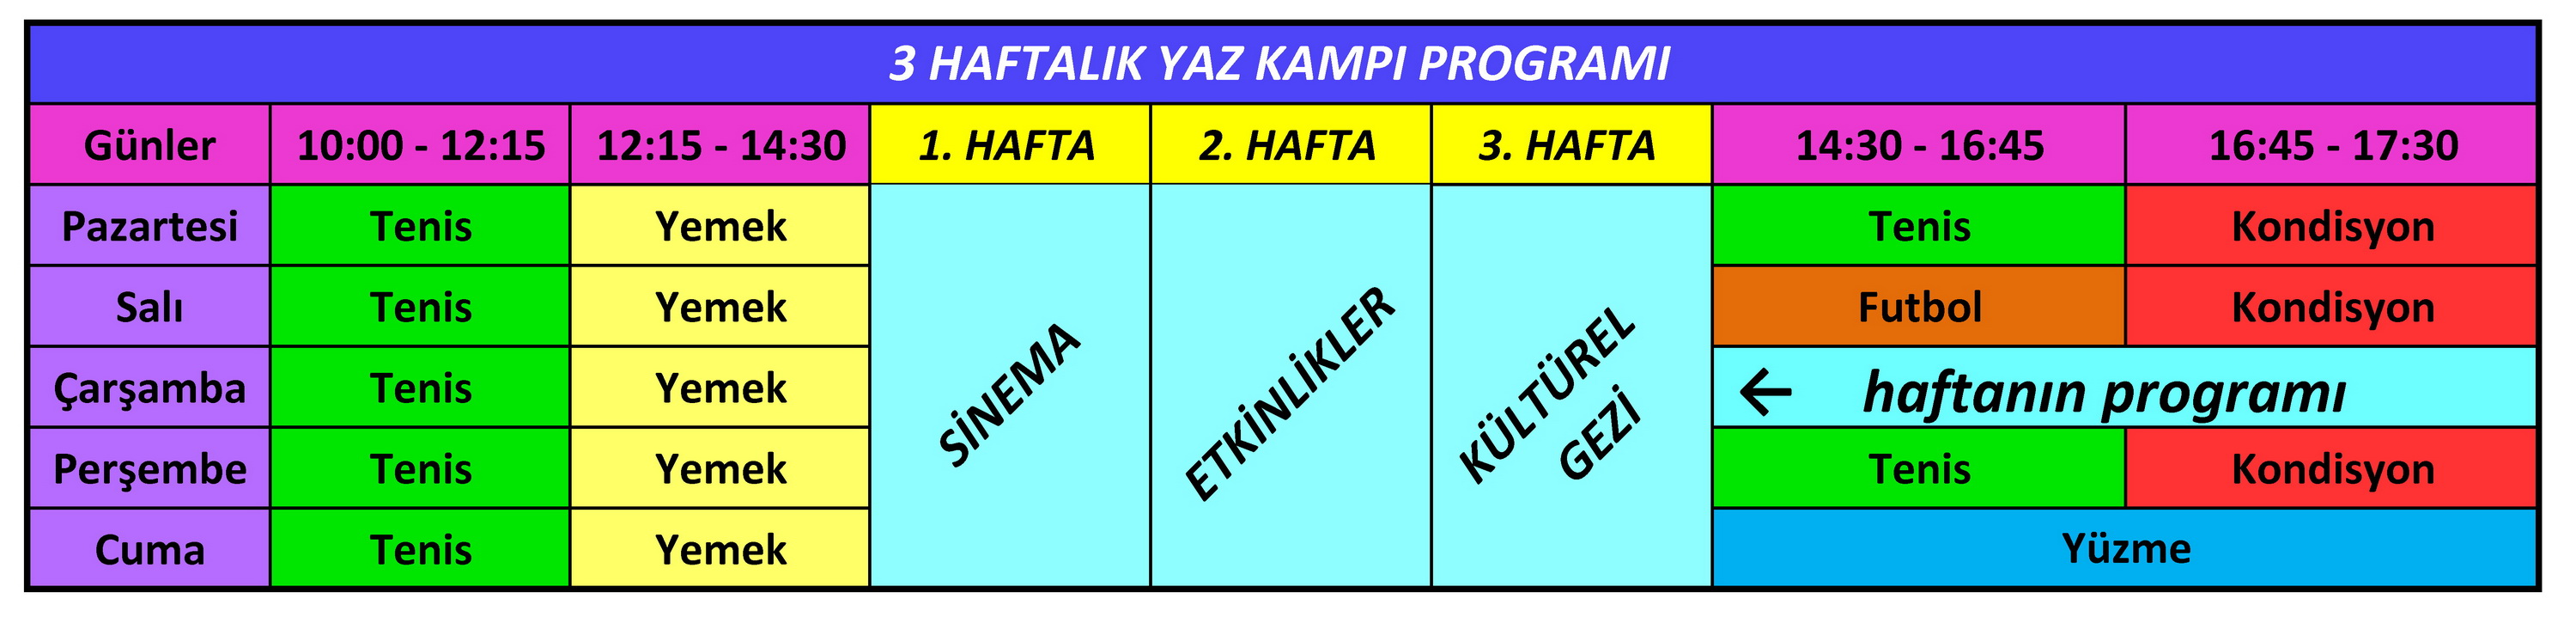 haftalk program son